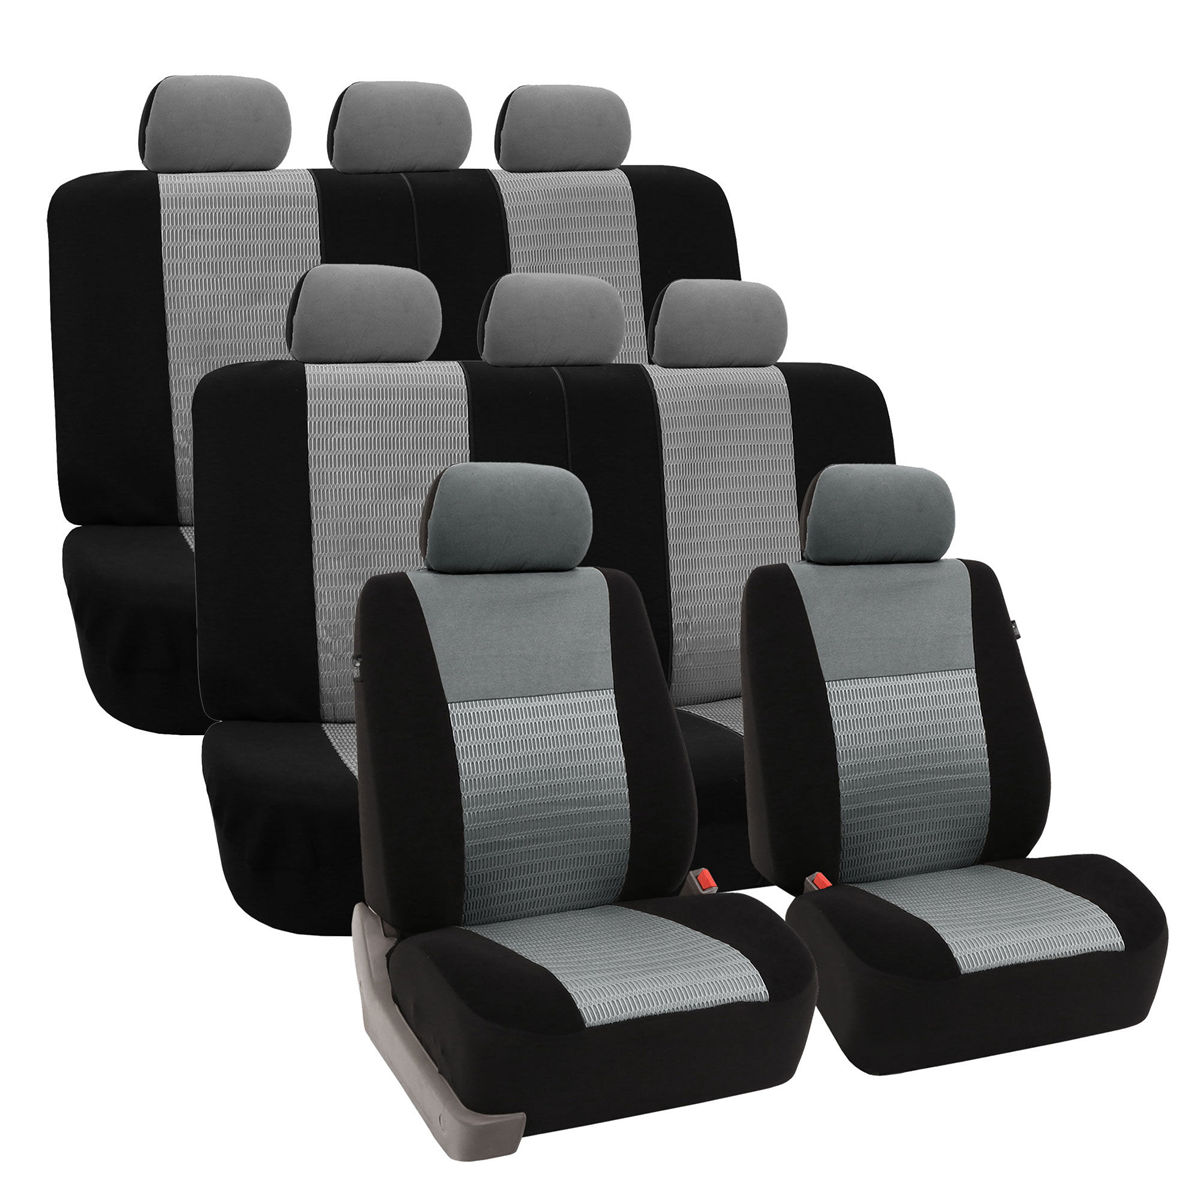 Deluxe 3D Air Mesh 3 Row Seat Covers - Gray 1